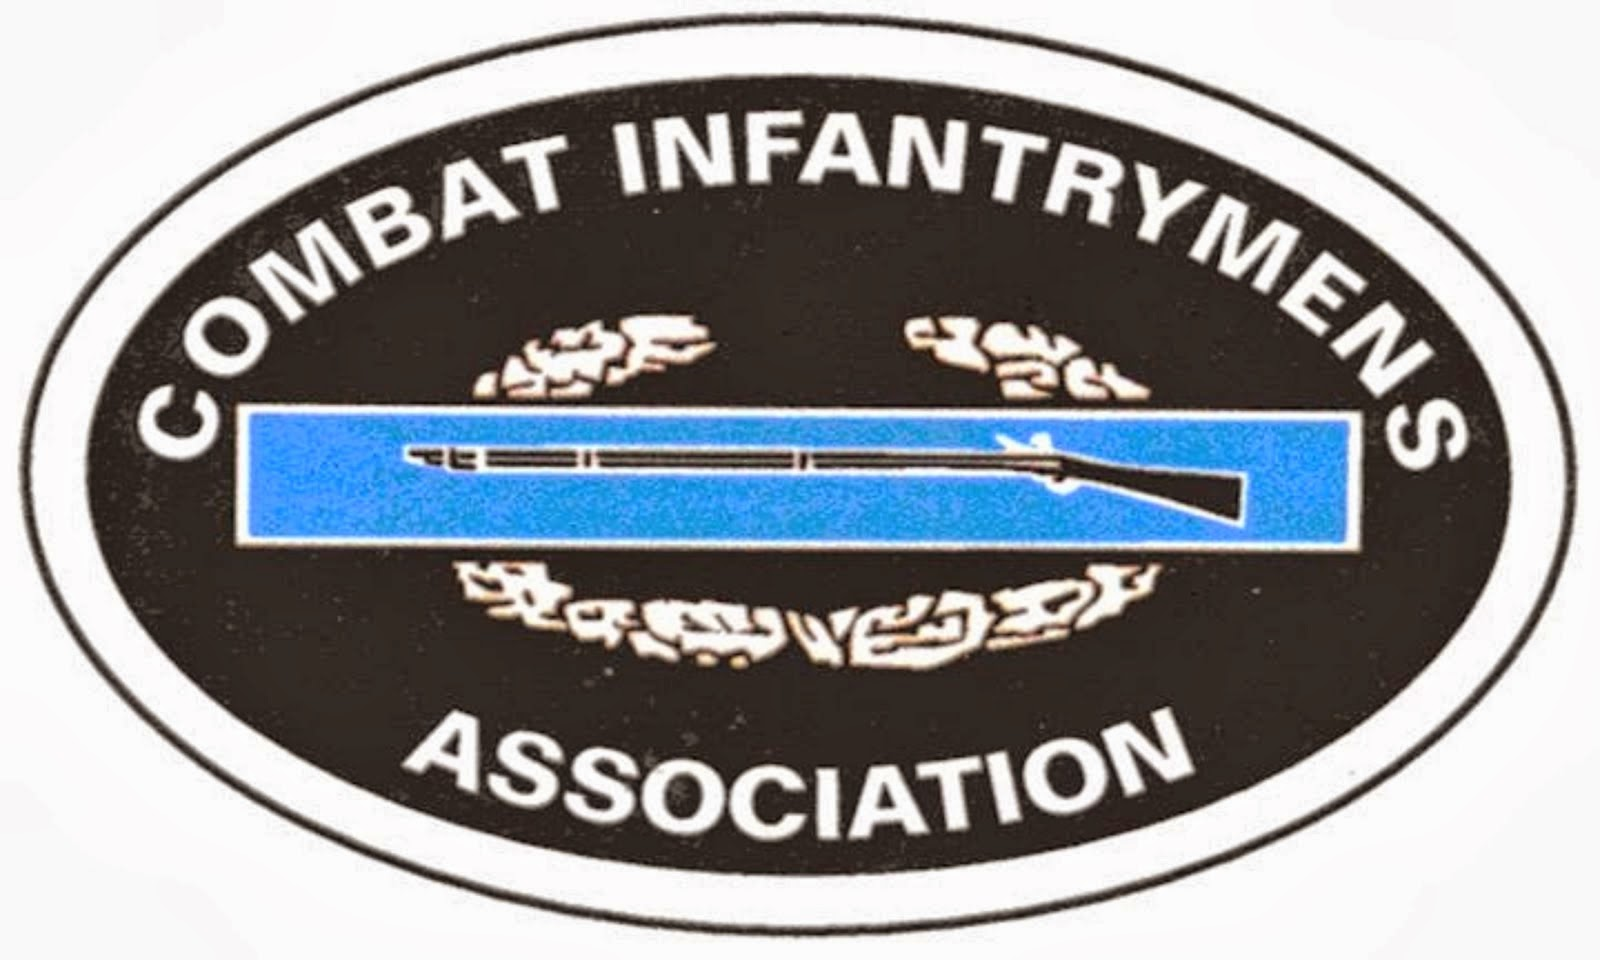 COMBAT INFANTRYMEN'S ASSOCIATION